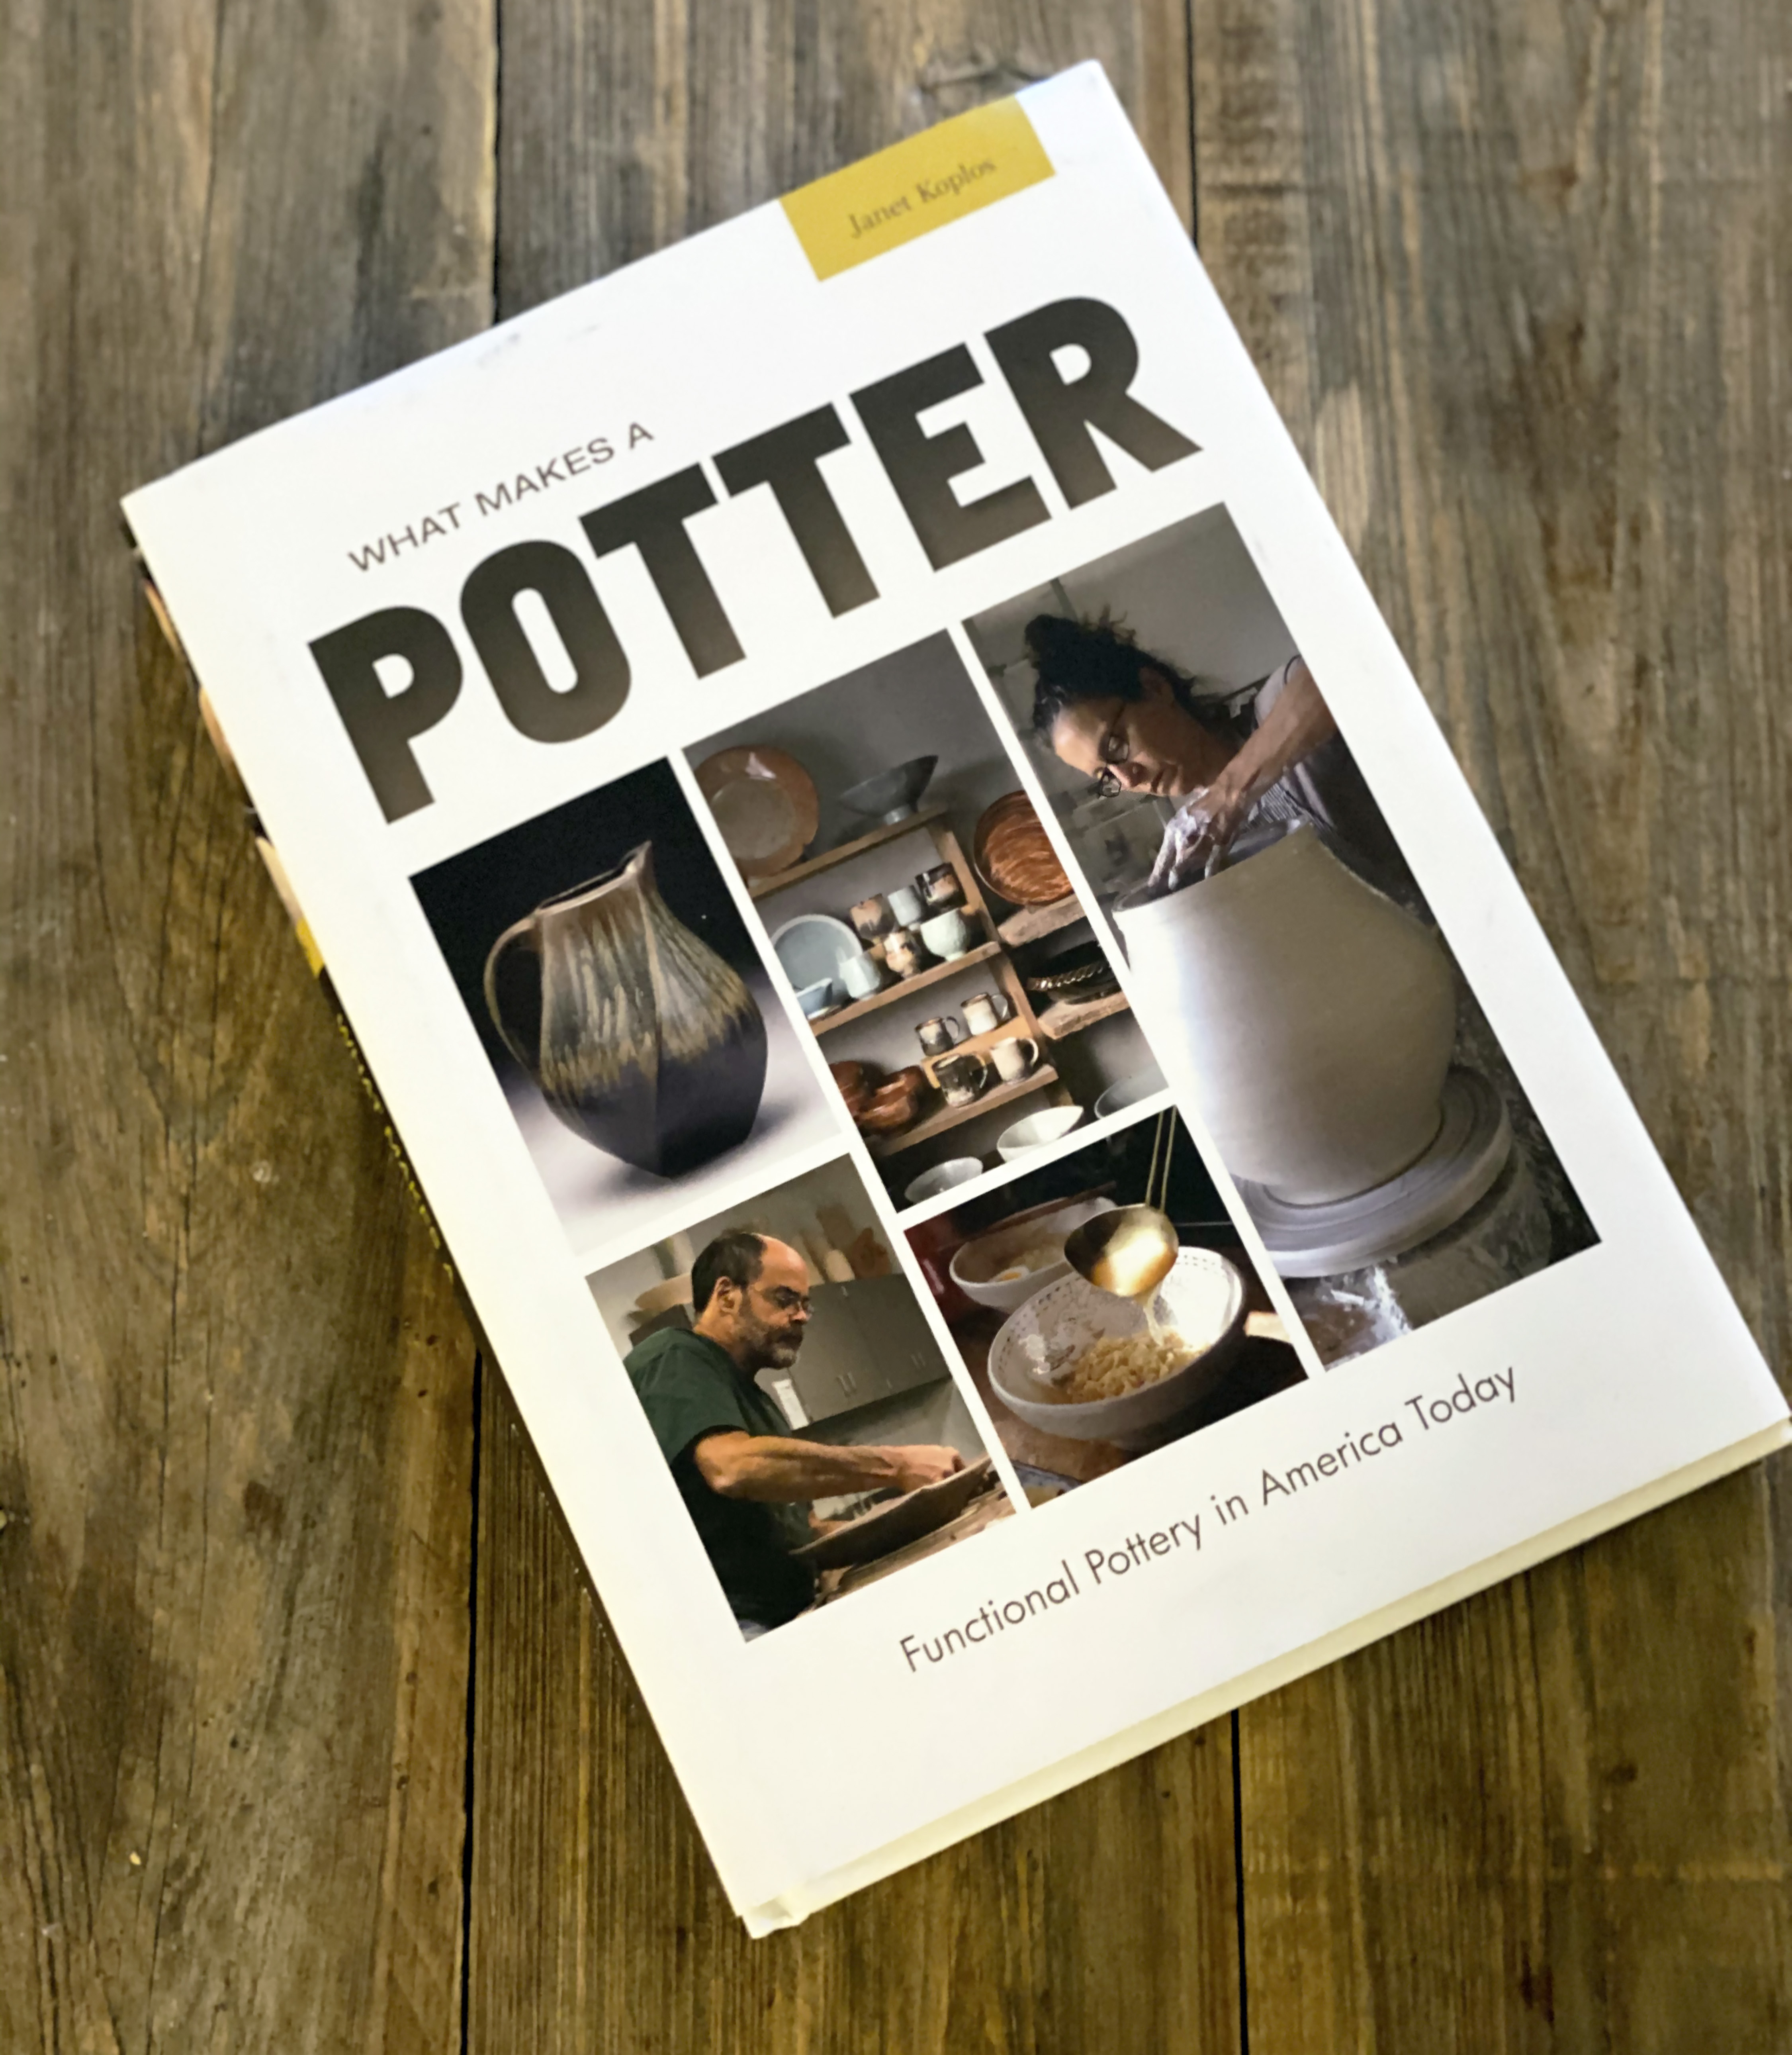 Janet Koplos, What Makes a Potter